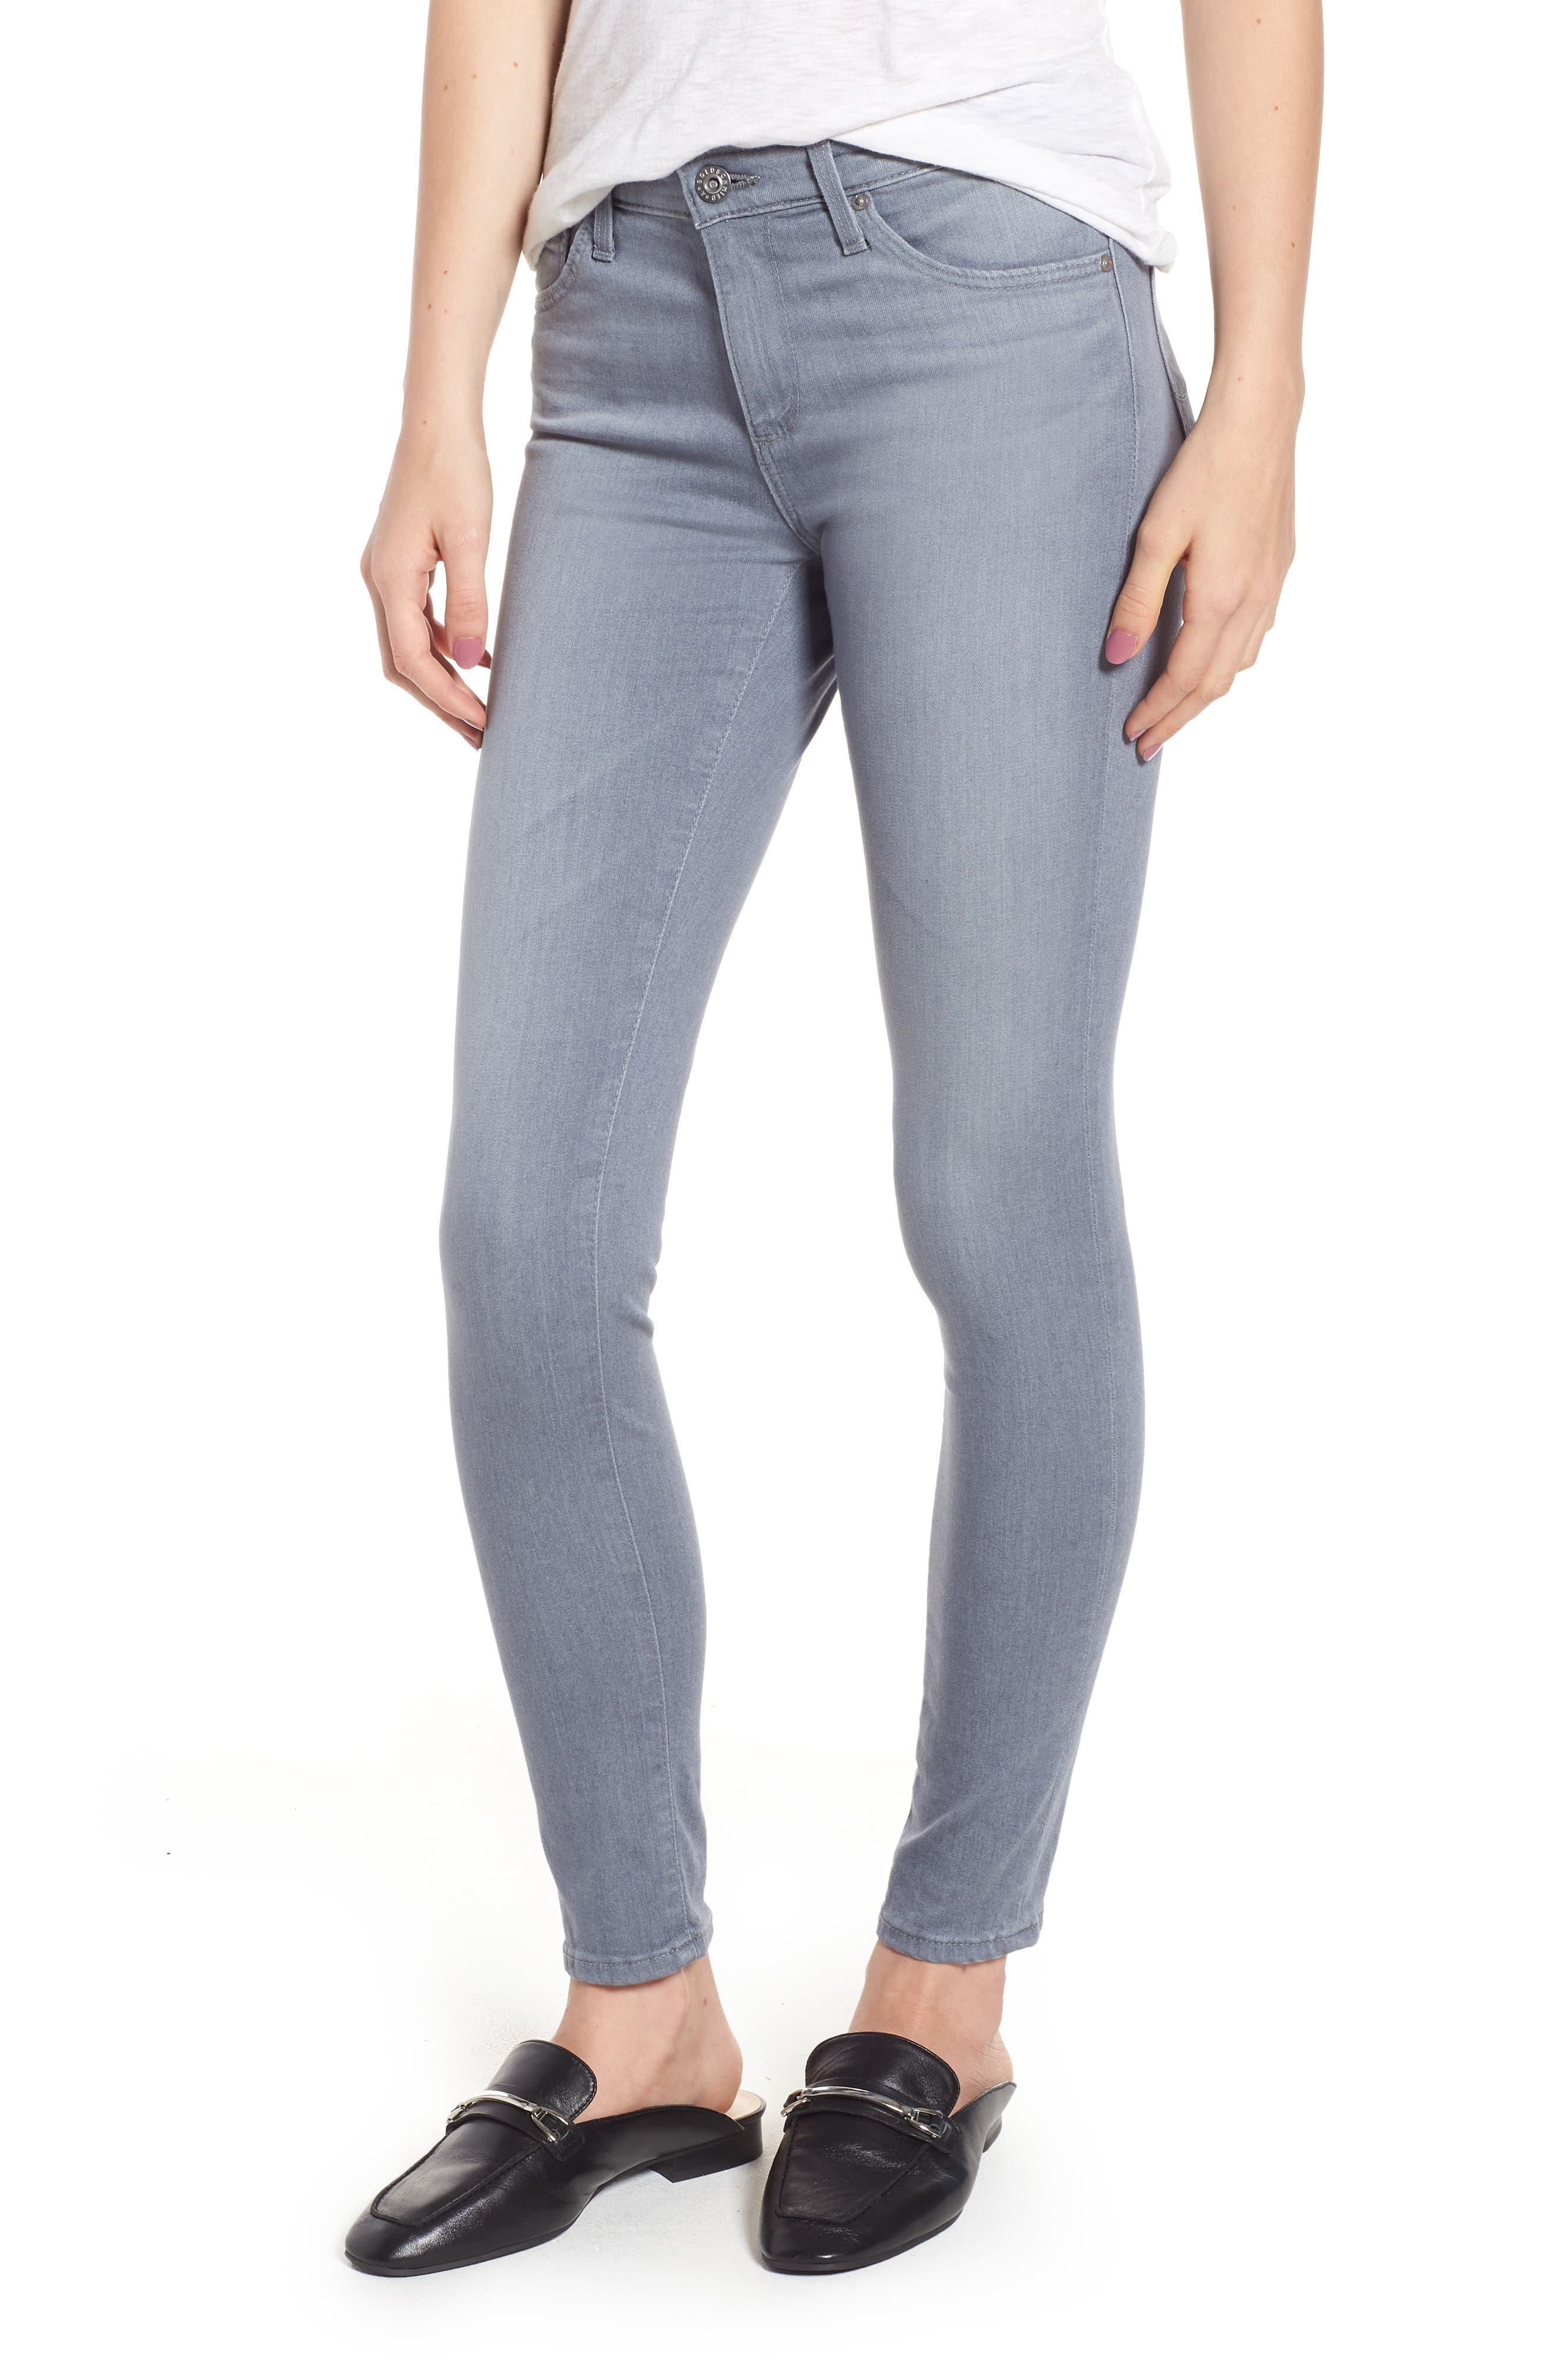 Ankle 'The Legging' Super Skinny Jeans,                         Main,                         color, Valley Smoke